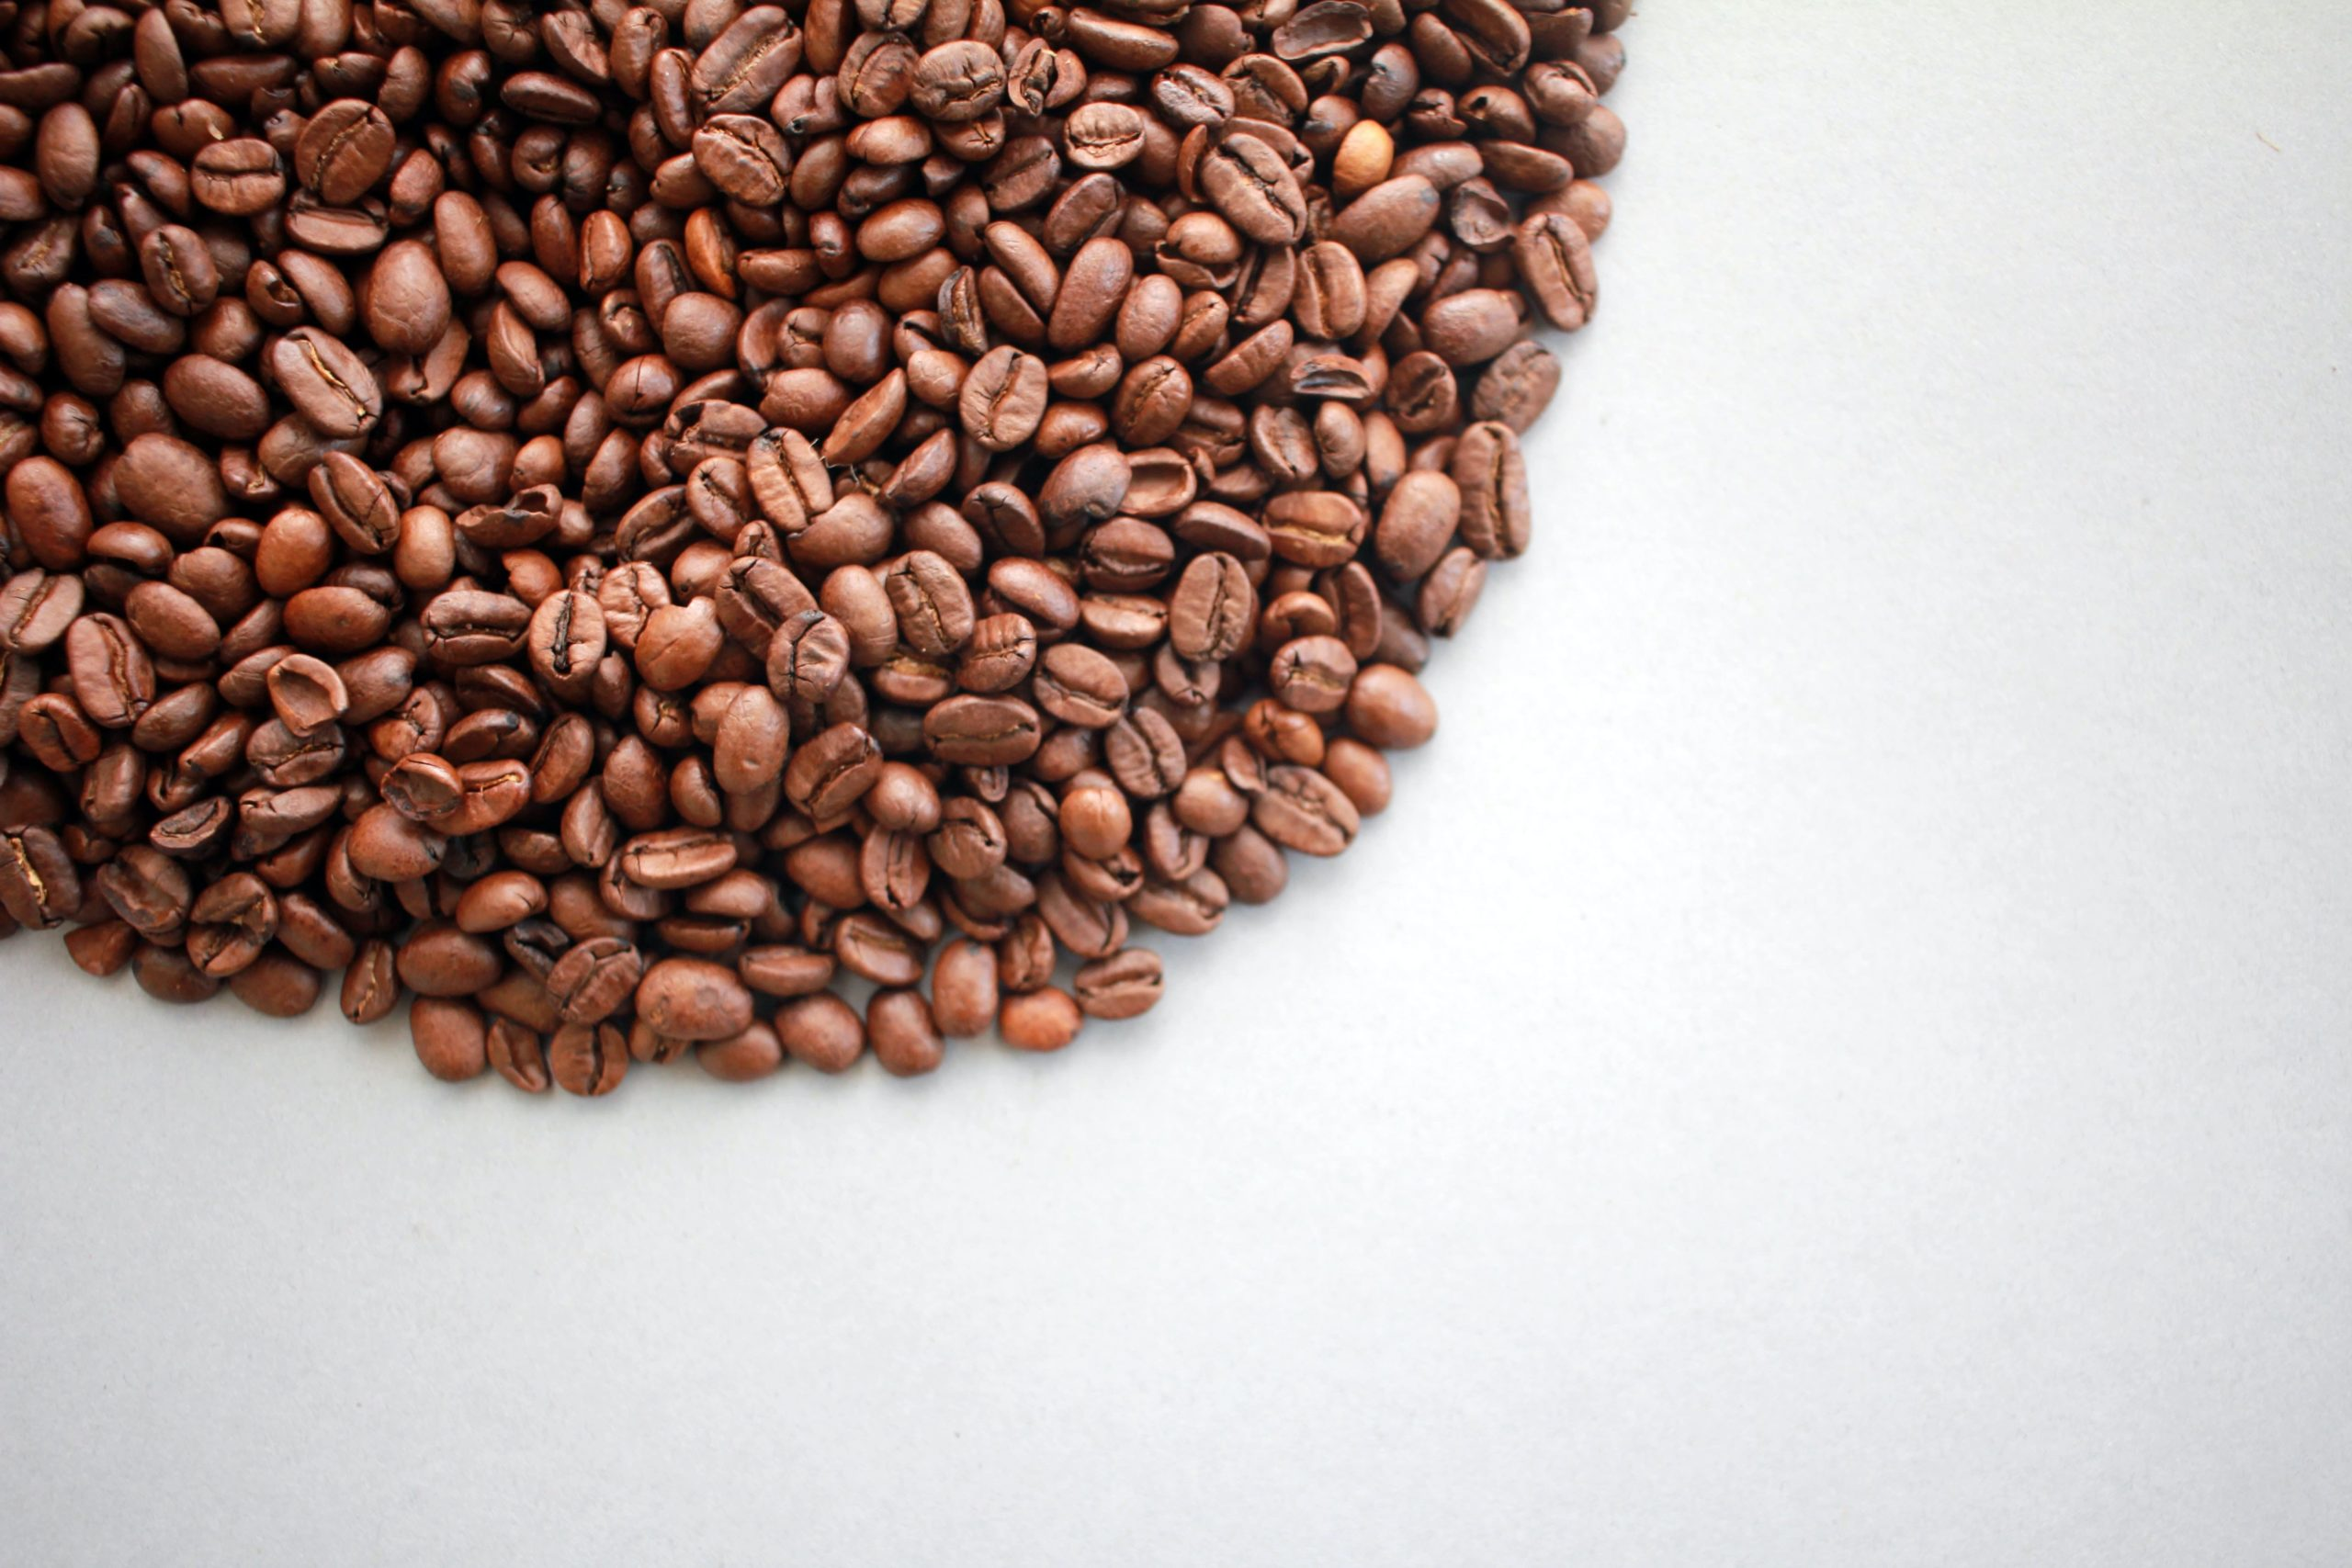 coffee beans placed on a table